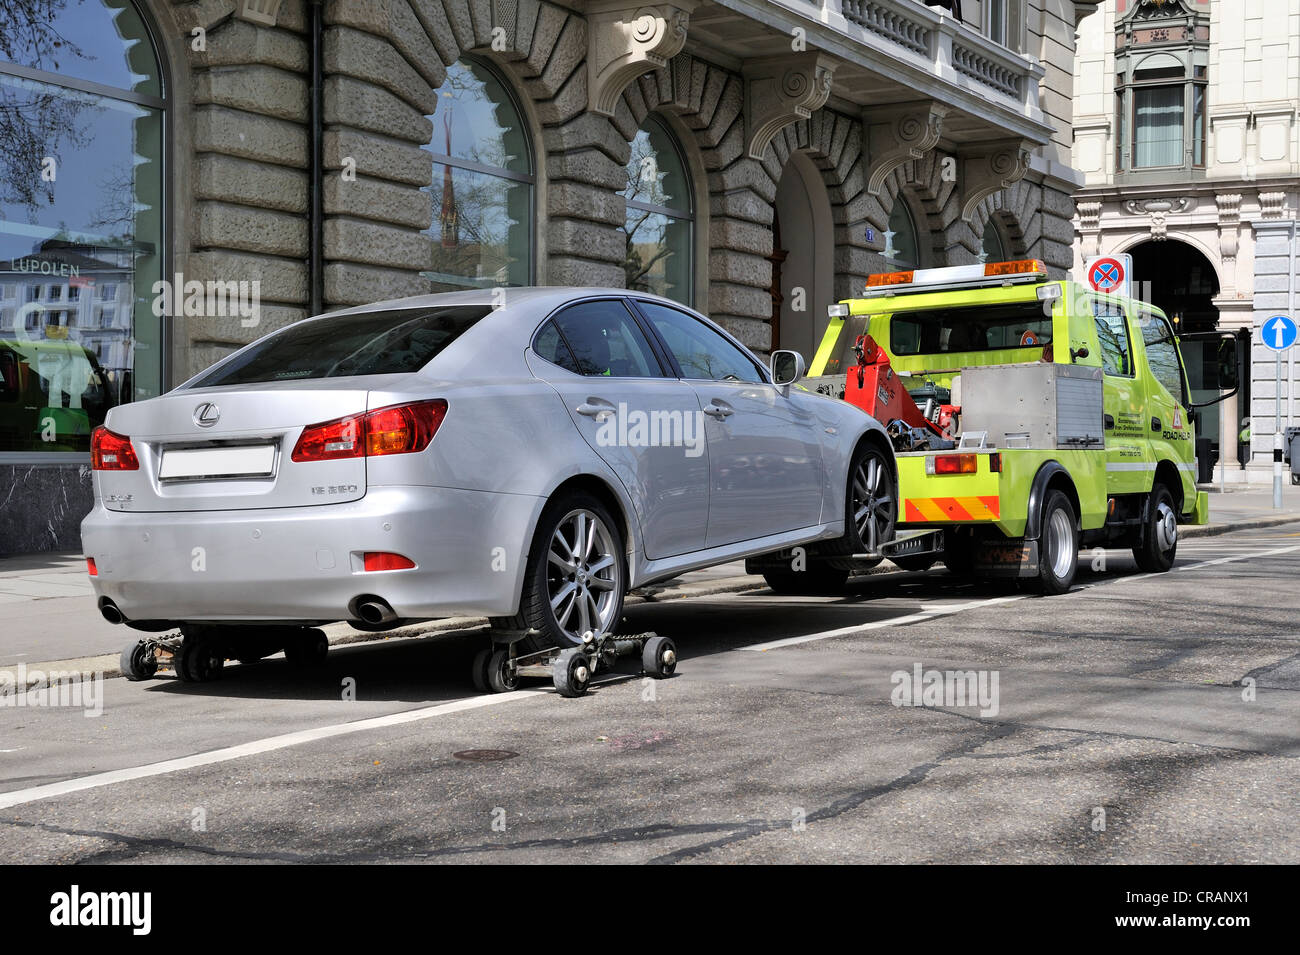 A car is being towed away from a no-parking zone in the historic district of Zurich, Canton of Zurich, Switzerland, - Stock Image